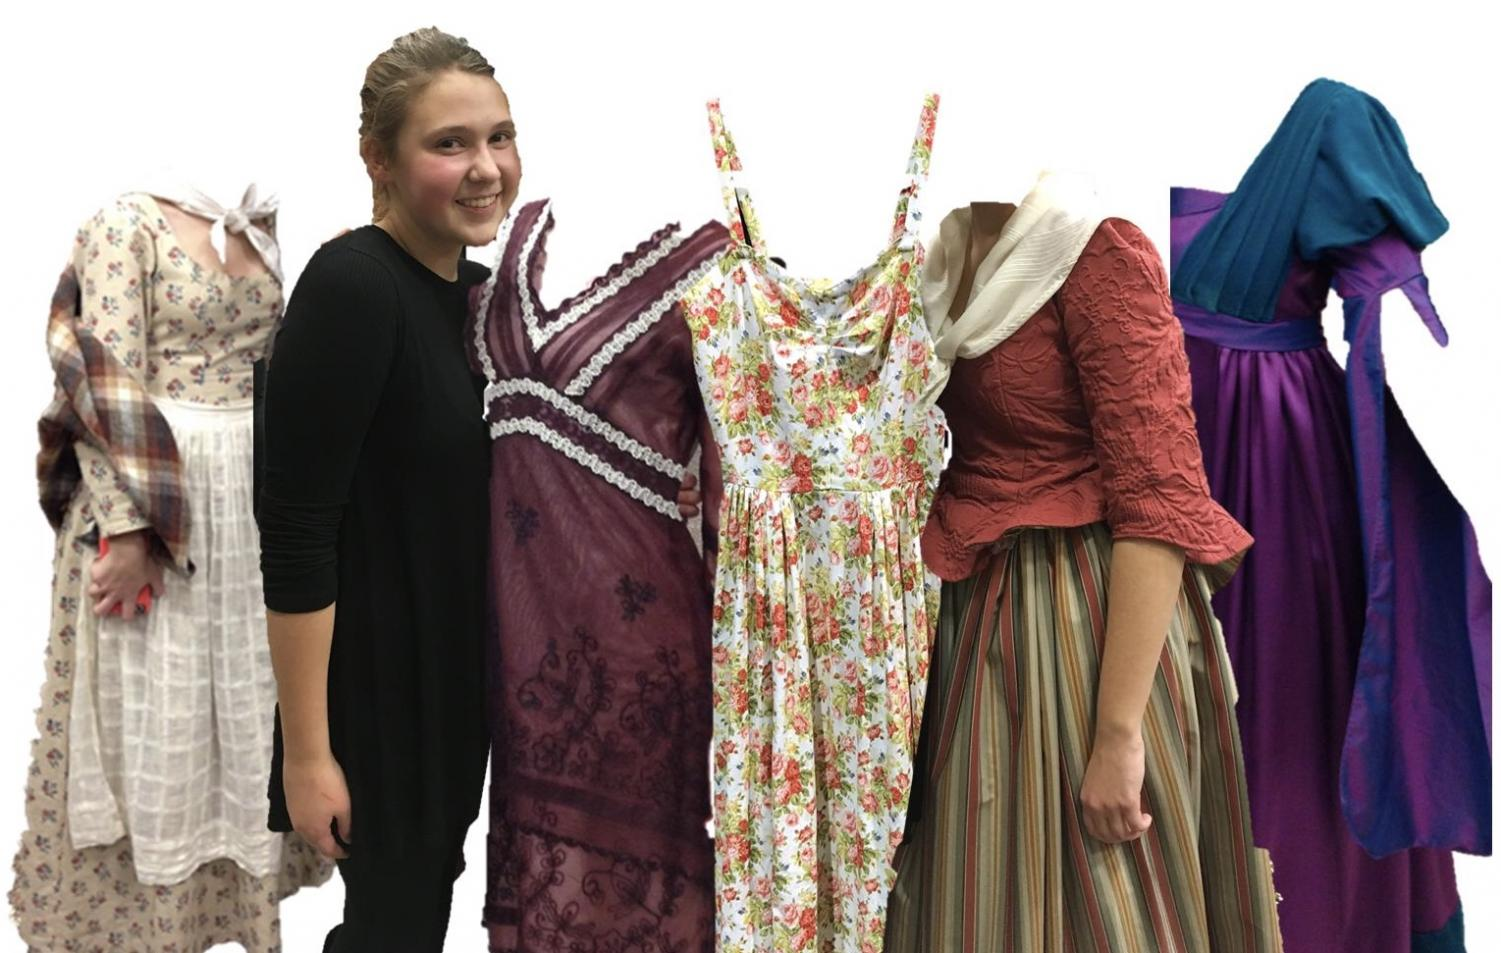 Katie Krise and her designs that appeared in